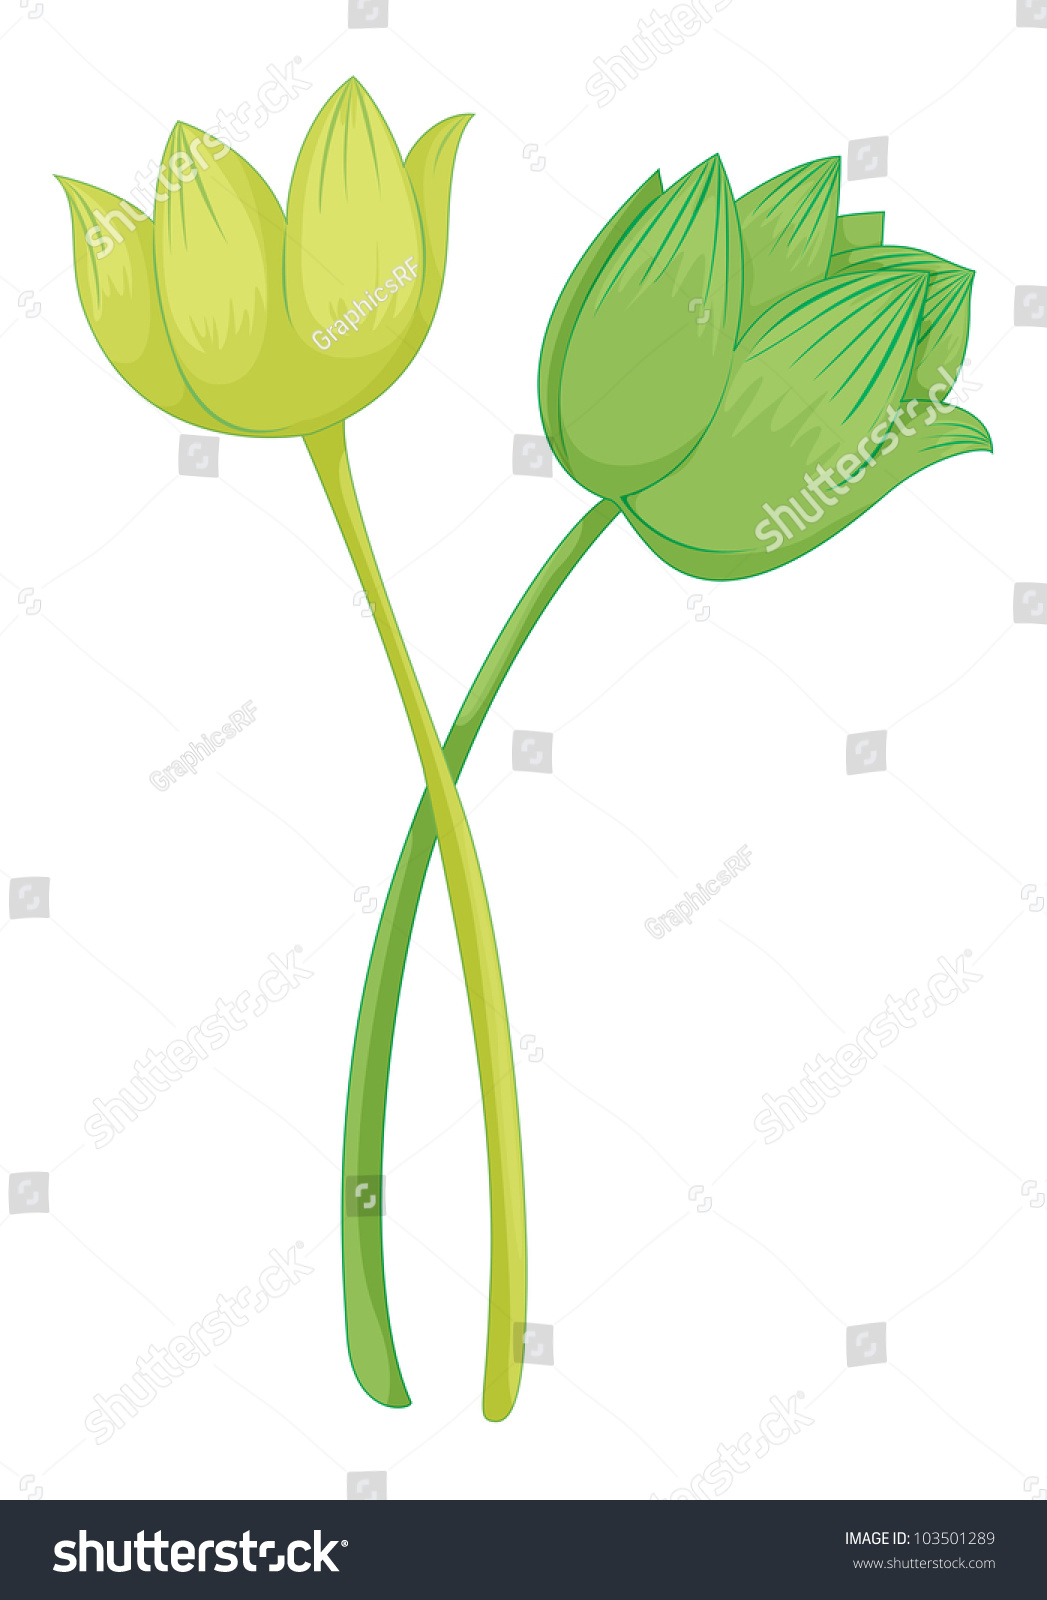 Illustration lotus flower eps vector format stock illustration illustration of a lotus flower eps vector format also available in my portfolio izmirmasajfo